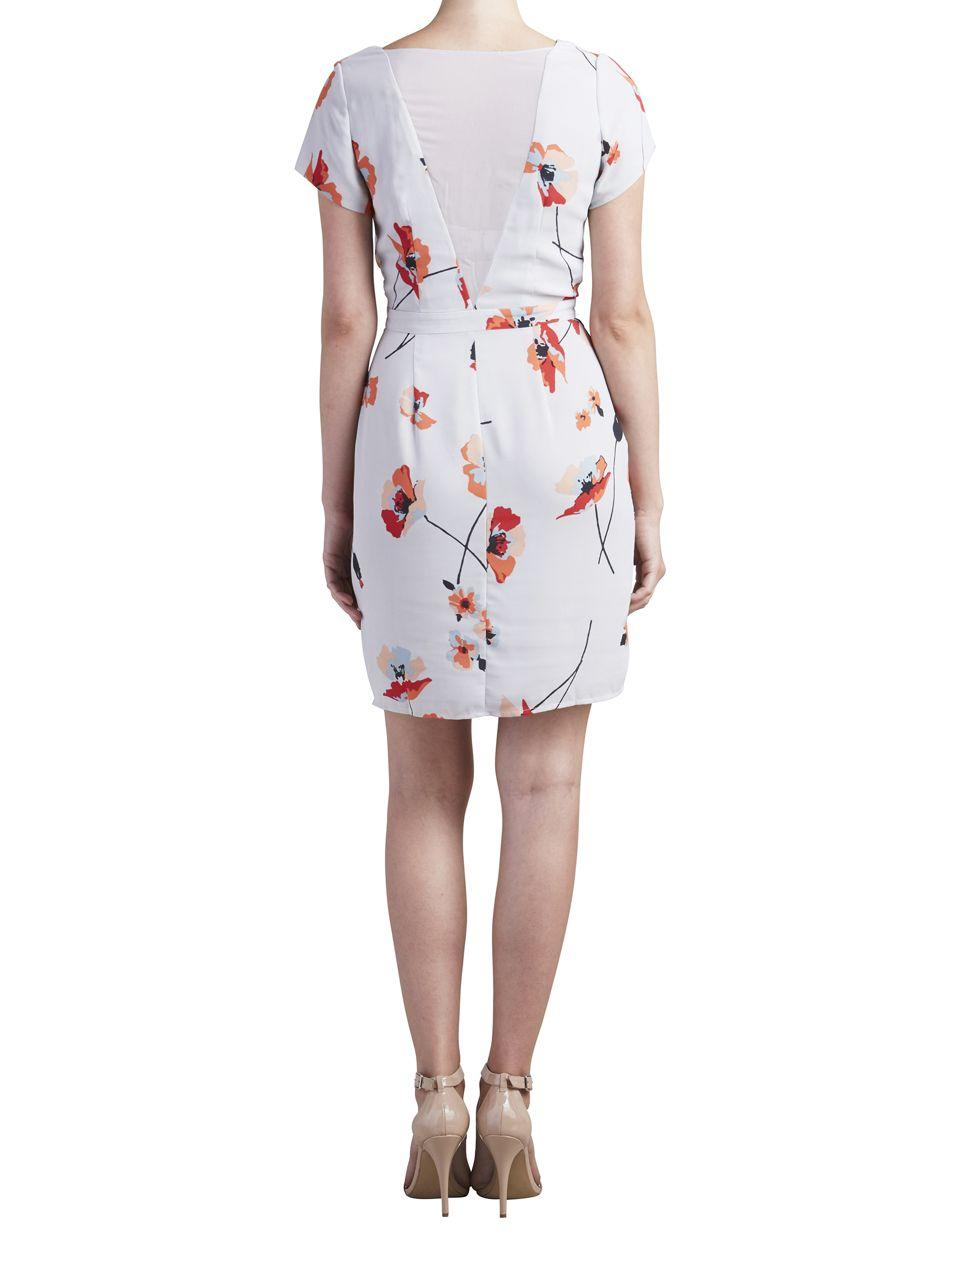 paper crown clothing Brand: paper crown origin: united states buy blanche cap sleeve dress on blanche cap sleeve dress details: color: as picture: currency: usd: condition: new: brands: paper crown: related styles: fashion hunter, pick up designer clothing, handbags.